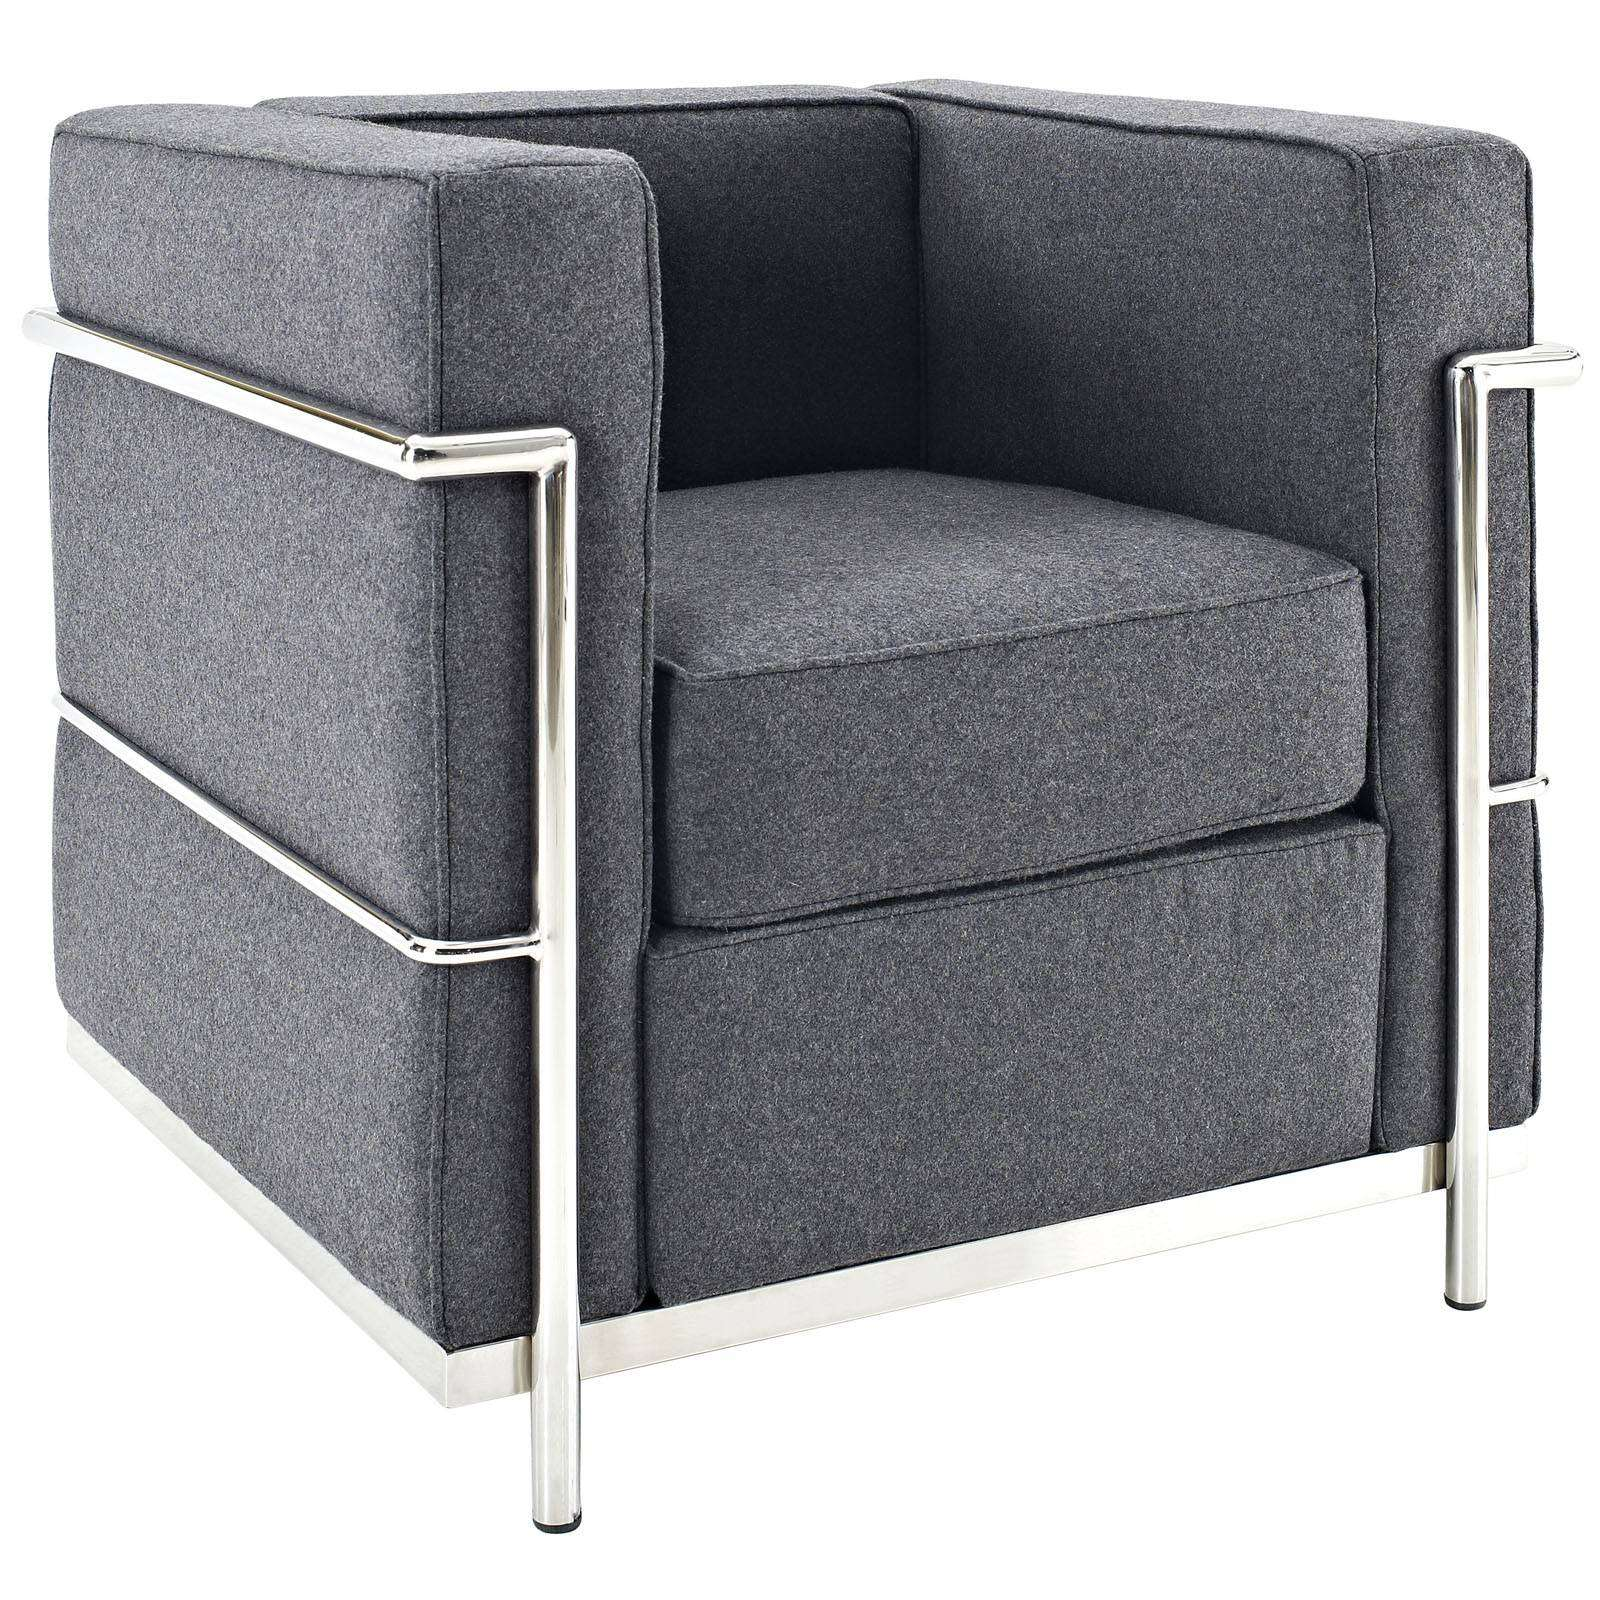 Corbusier Lc2 Le Corbusier Style Lc2 Arm Chair - Wool